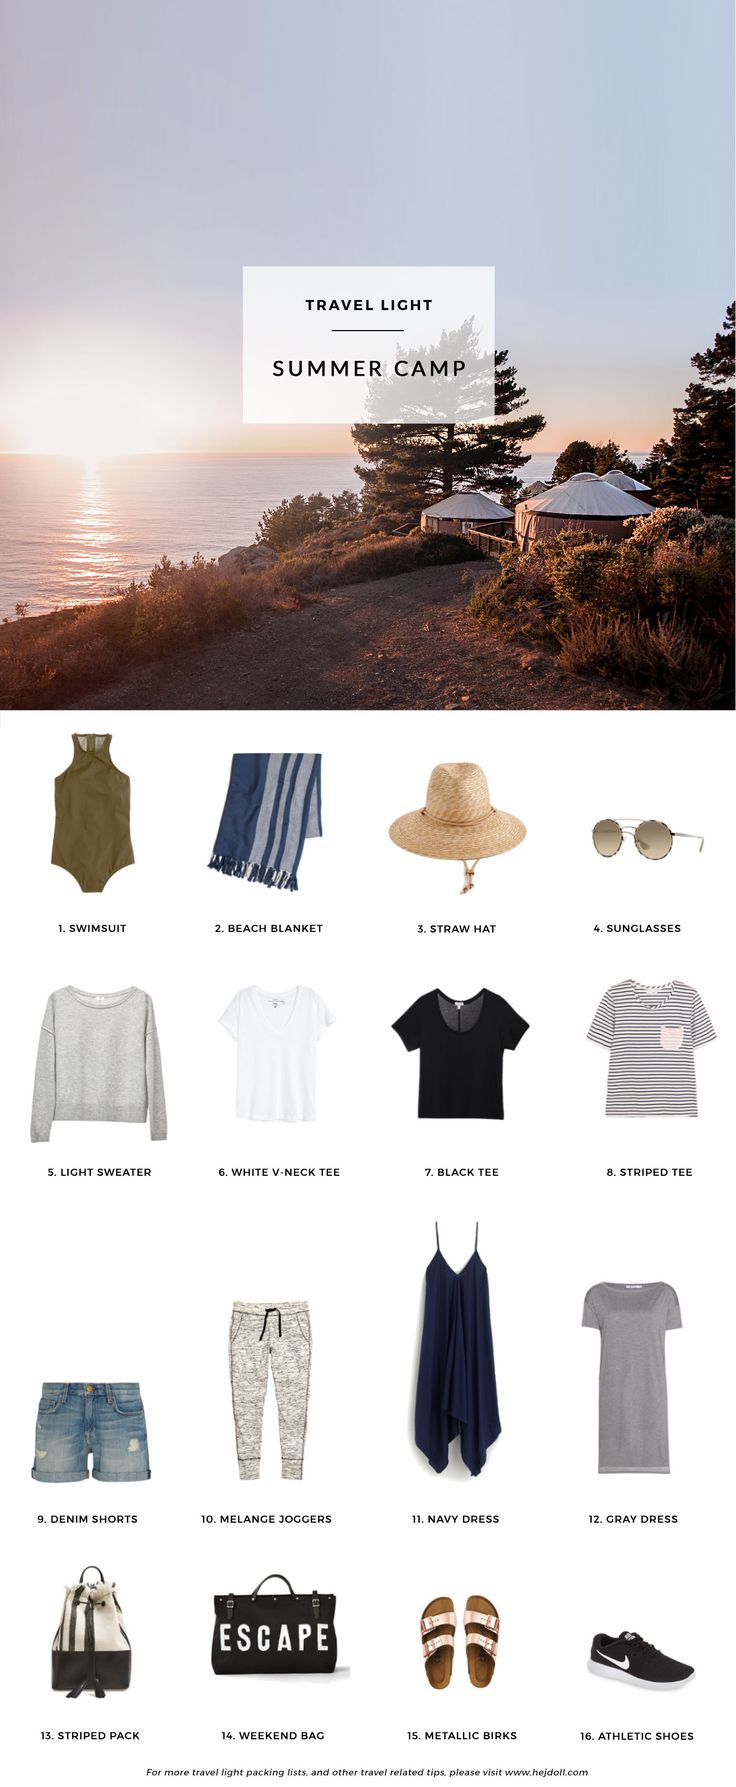 1. J.Crew High-Neck Swimsuit / 2. Marine Layer Jetties Beach Blanket* / 3. J.Crew Wide Brim Hat / 5. Prada Sunglasses / 6. Cuyana Boatneck Sweater* / 6. H&M White V-Neck Tee* / 7. Cuyana Black Scoop T